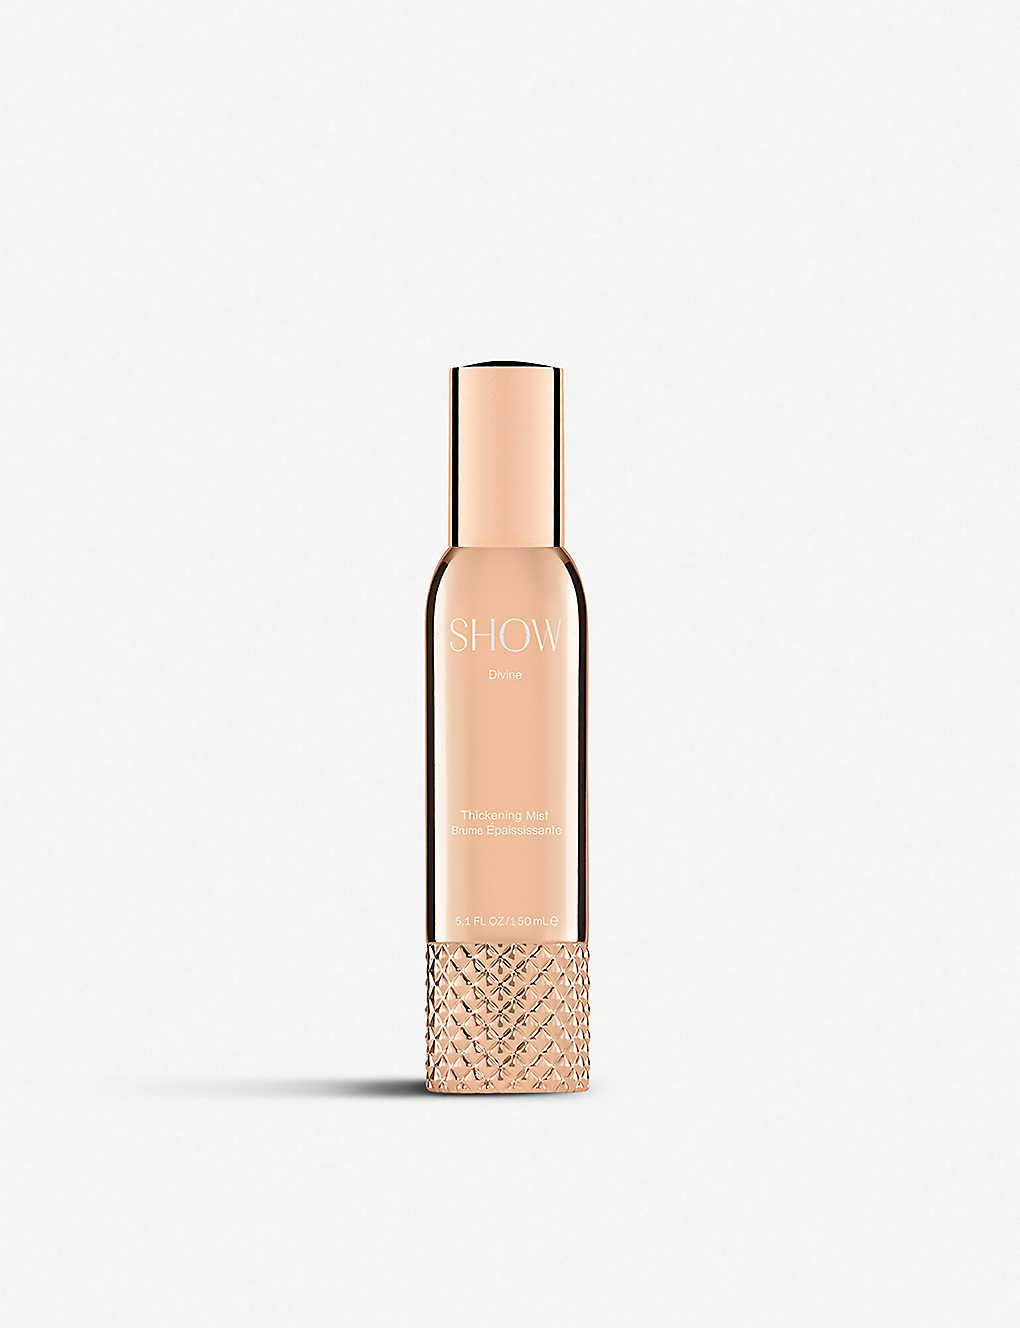 SHOW BEAUTY: Divine thickening mist 150ml